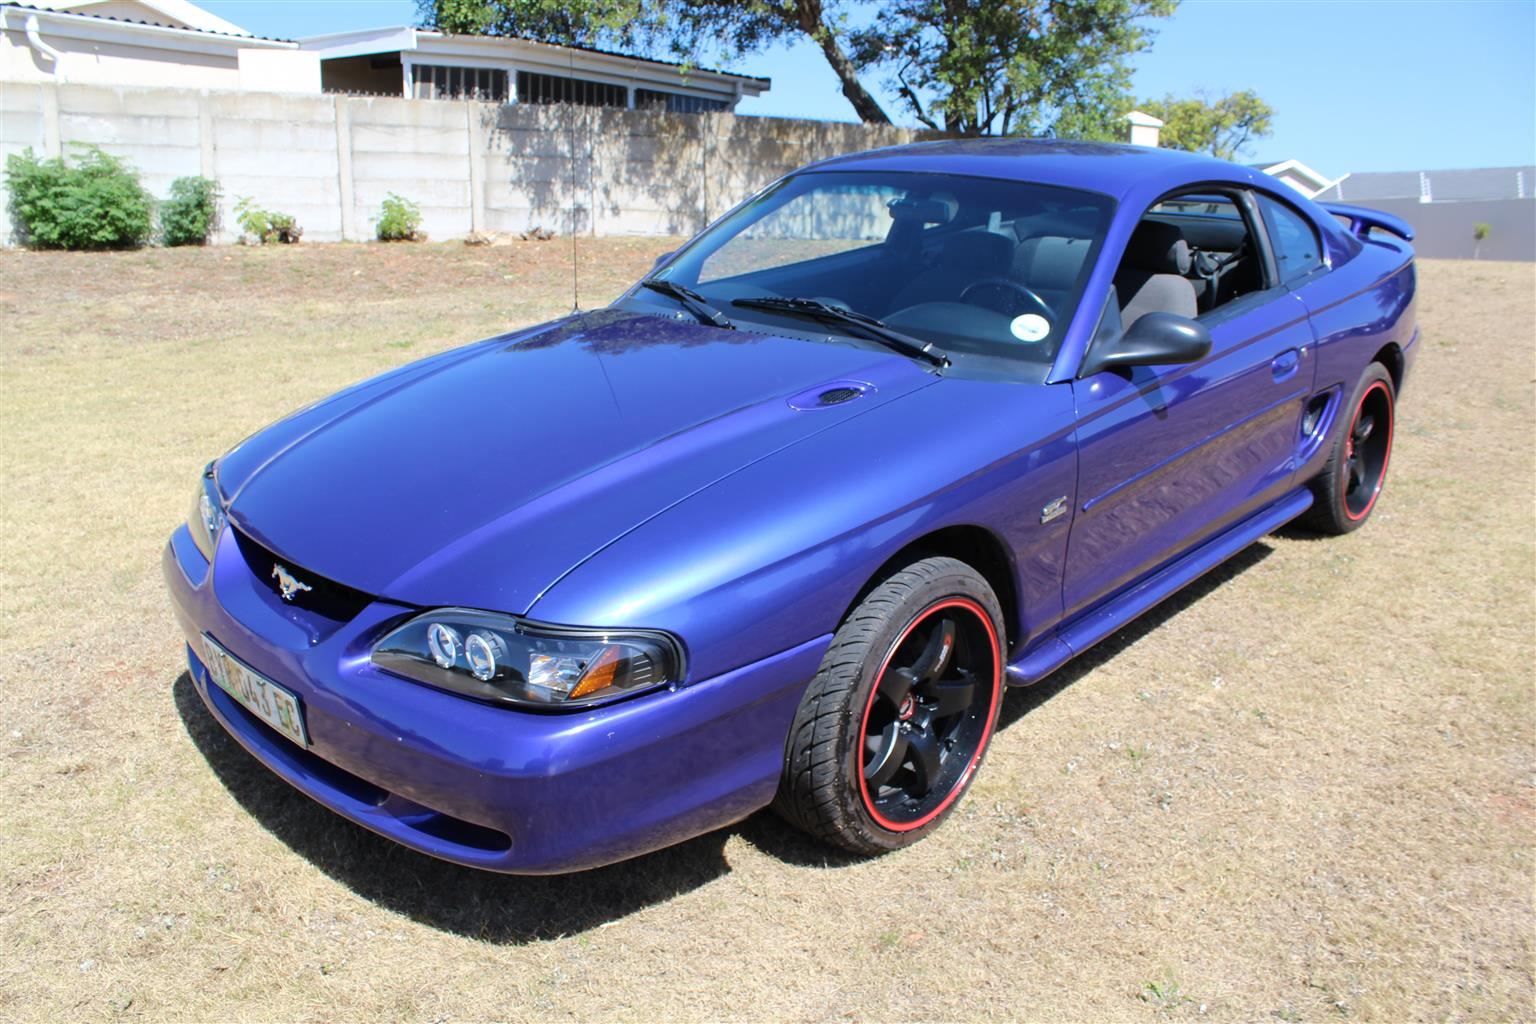 1995 Ford Mustang GT Coupe 5.0 litre LHD Manual